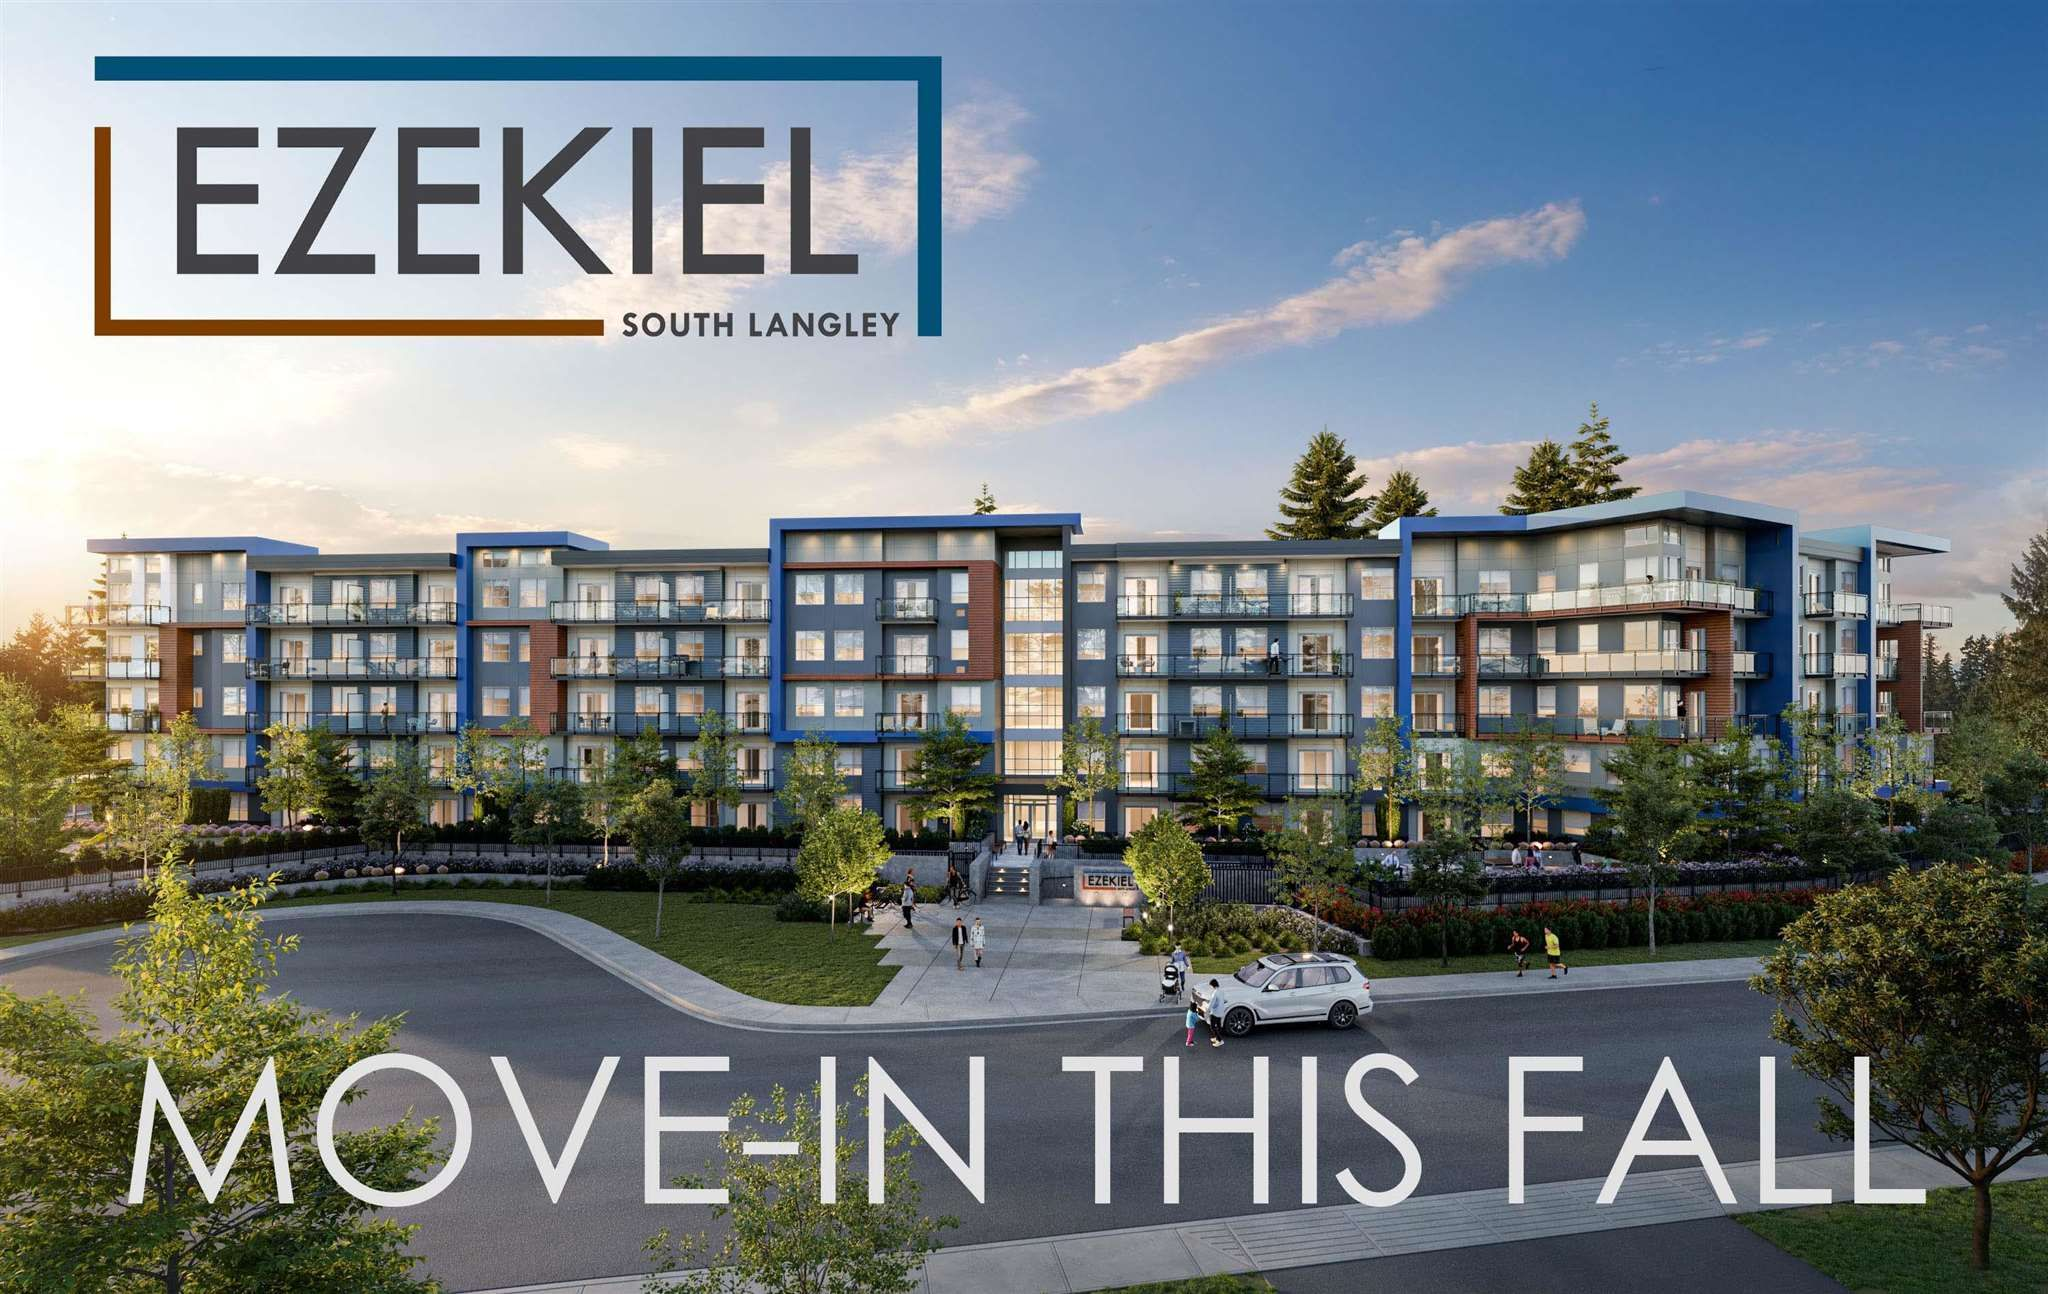 """Main Photo: 416 5486 199A Street in Langley: Langley City Condo for sale in """"Ezekiel"""" : MLS®# R2611006"""